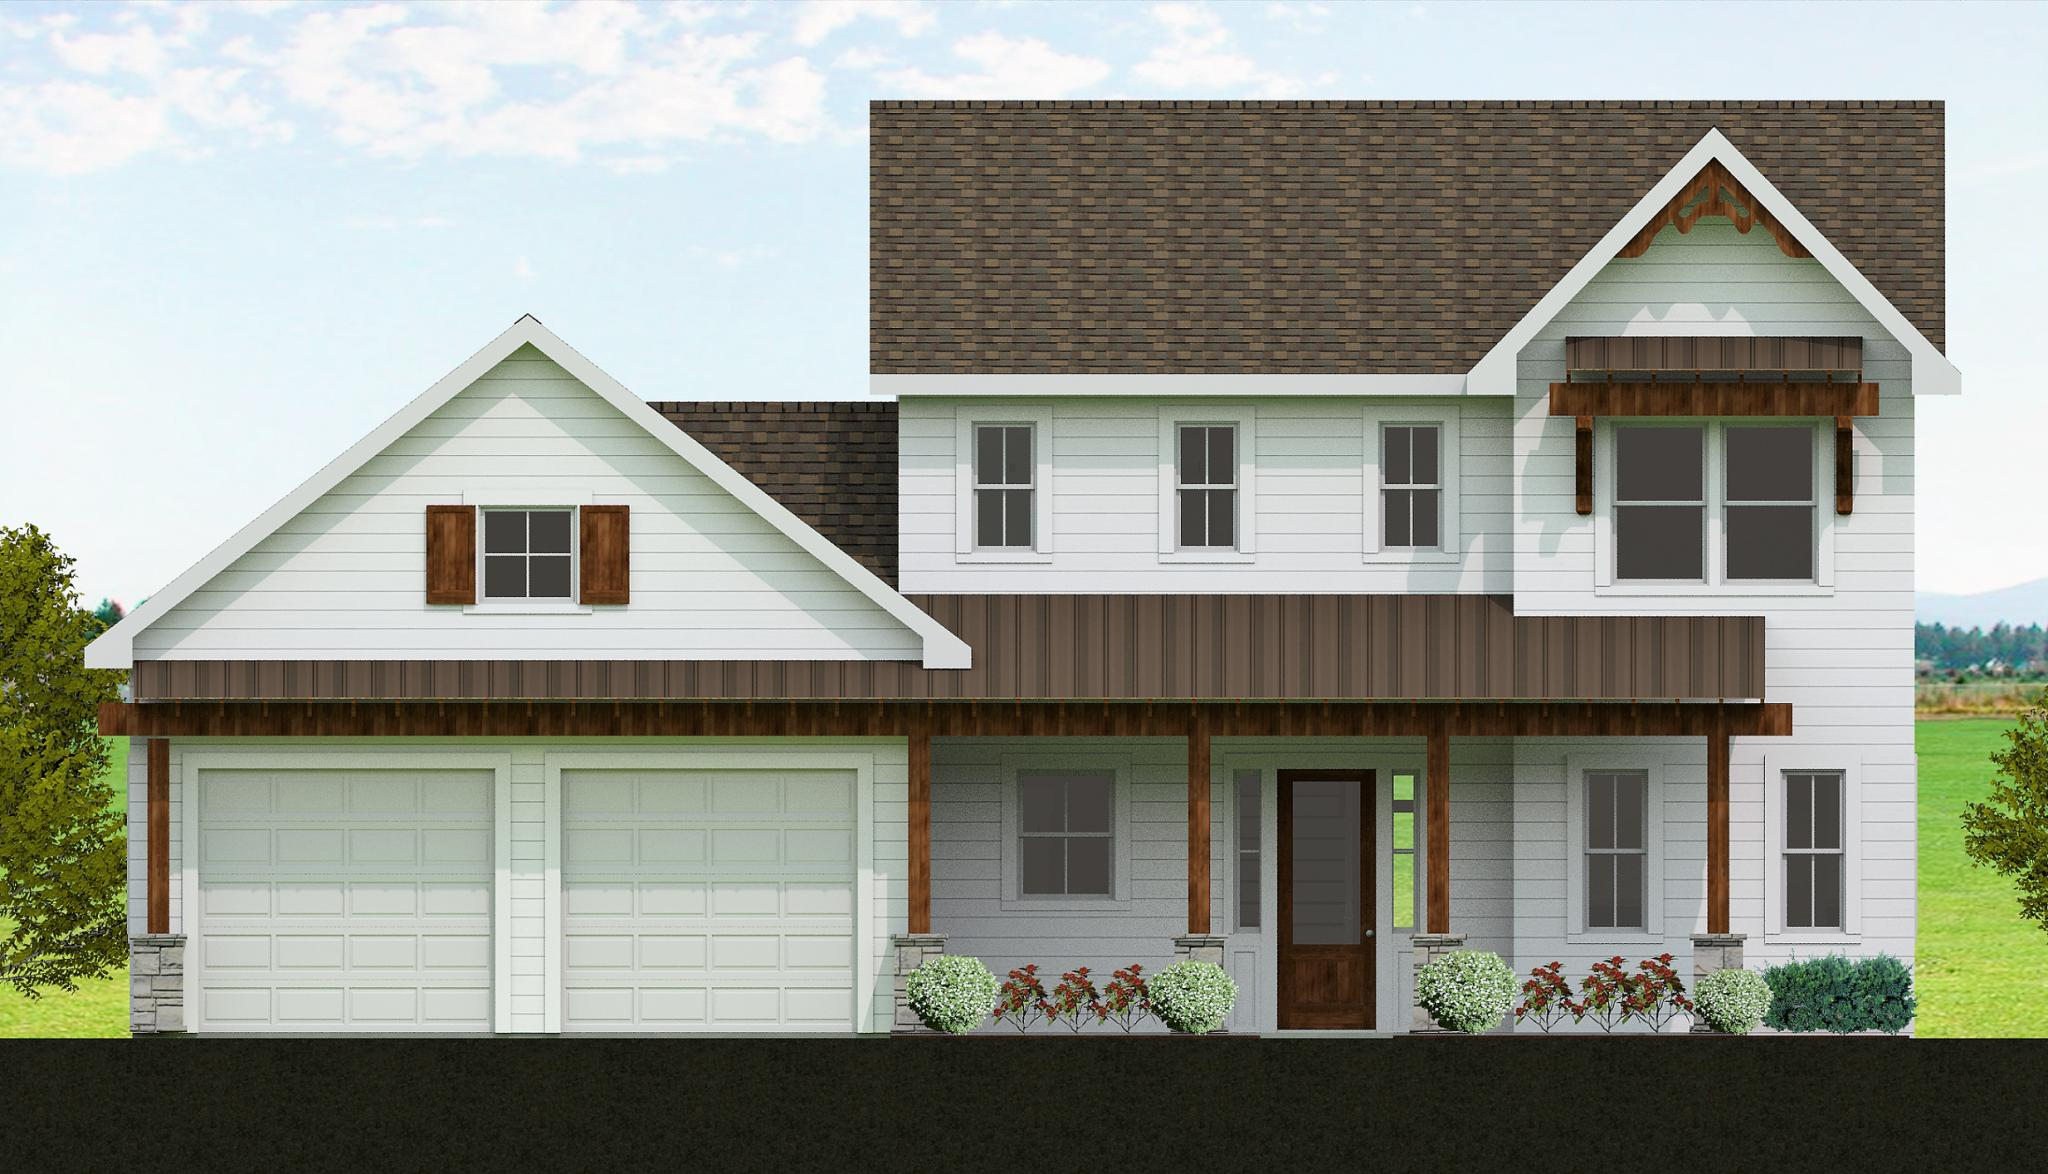 The Avenues by Guardian Homes New Homes for Sale - Idaho Falls, ID | Trulia